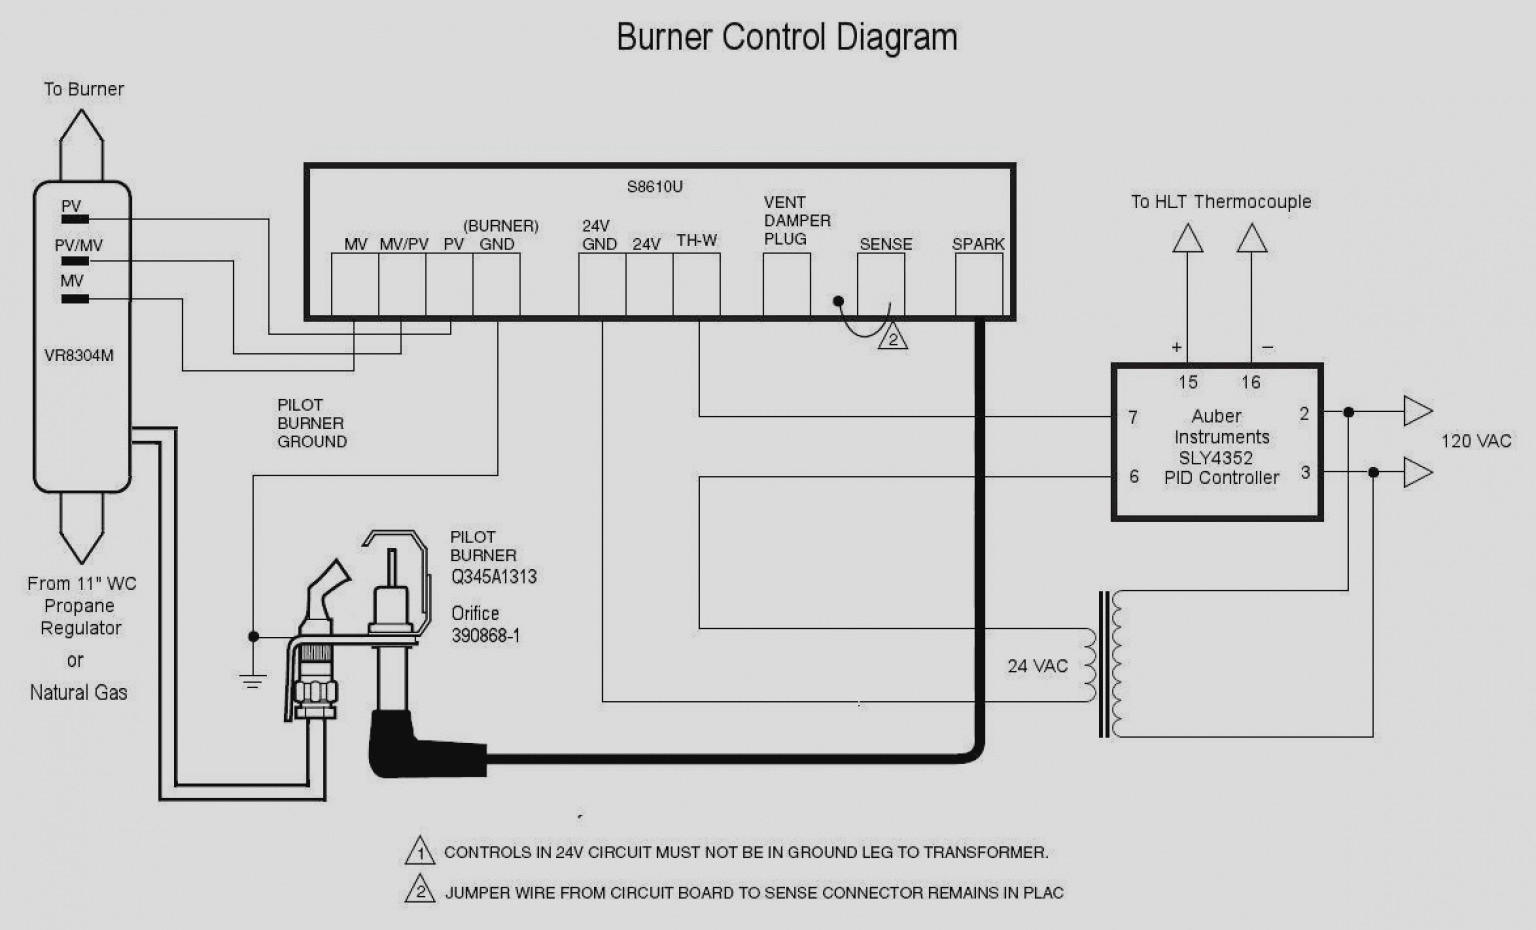 honeywell burner control wiring diagram Download-gas valve wiring diagram Gas Valve Wiring Diagram Honeywell Free Download Diagrams Noticeable 15-h